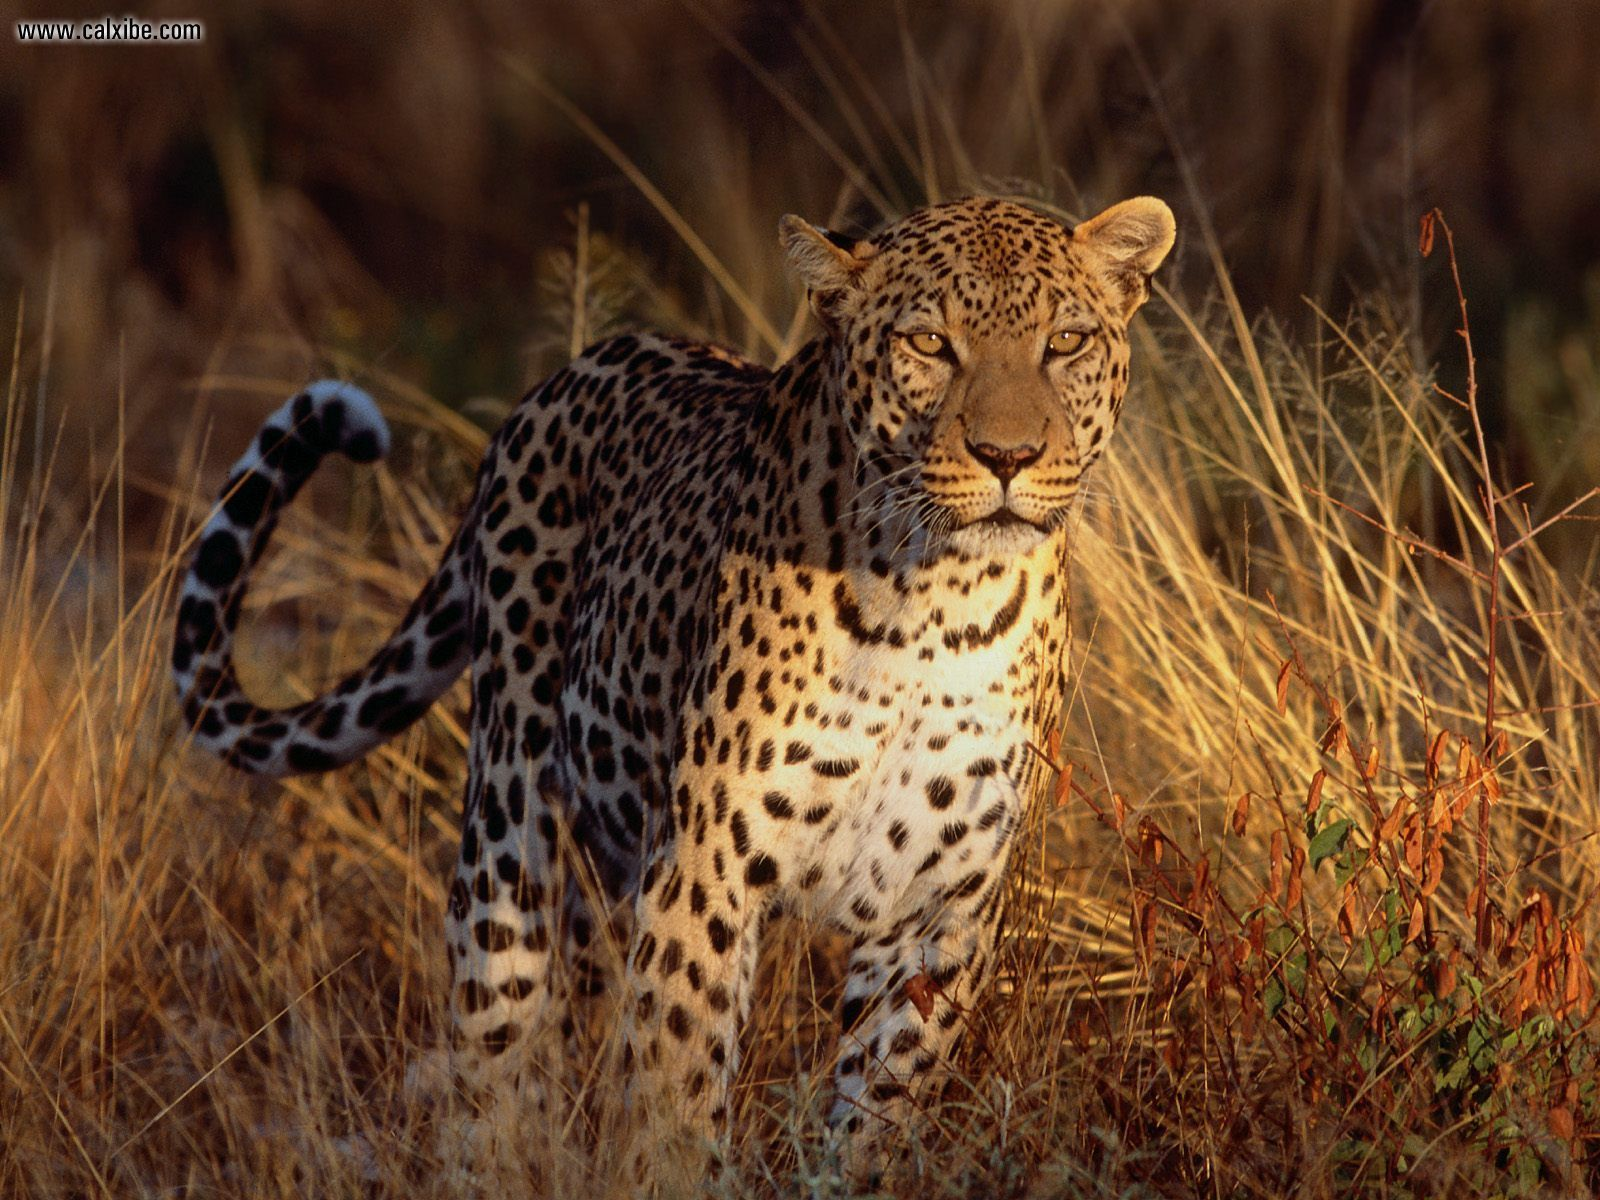 Leopard, my favorite of the big cats | the CAT's meow ...